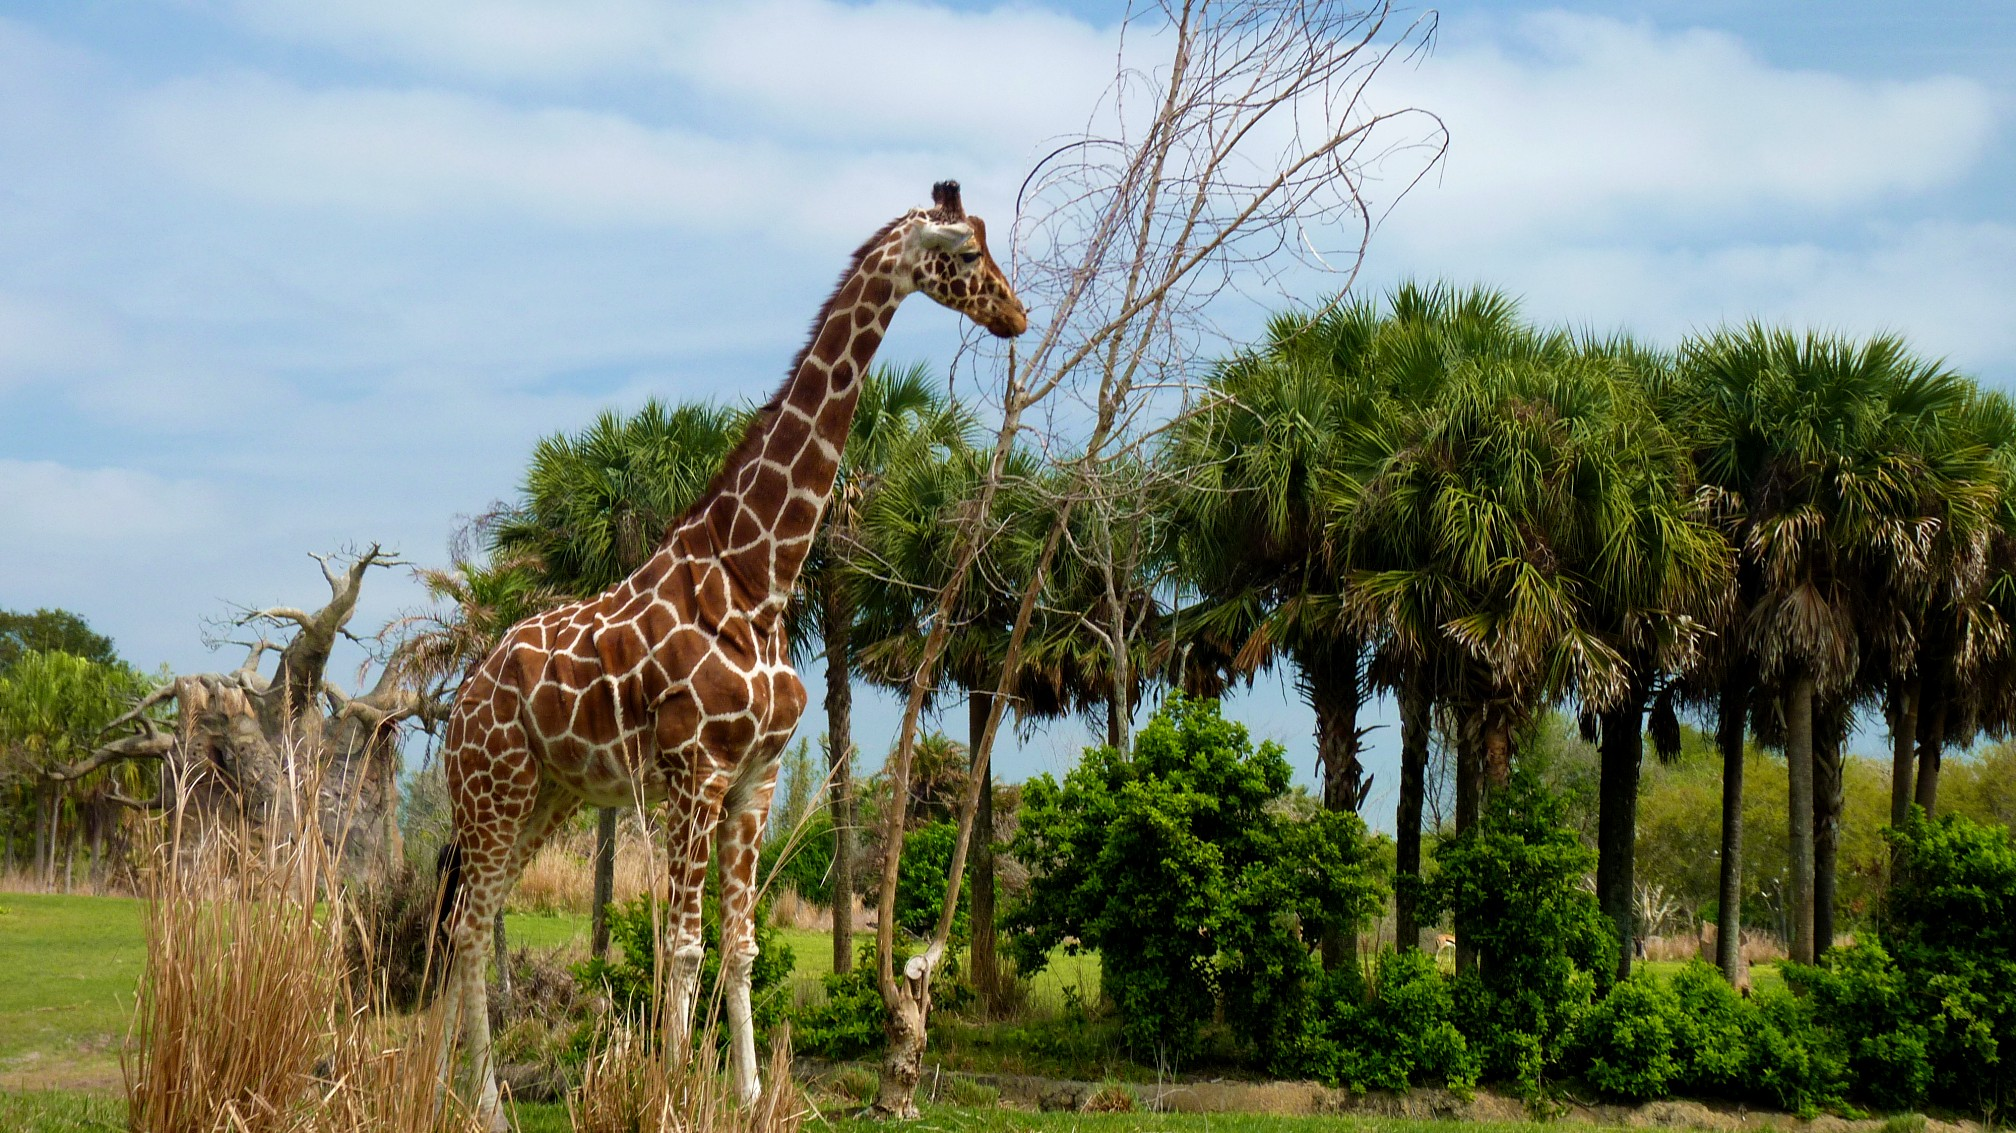 Jud's Disney Picture of the Day: GIRAFFE AND TREES